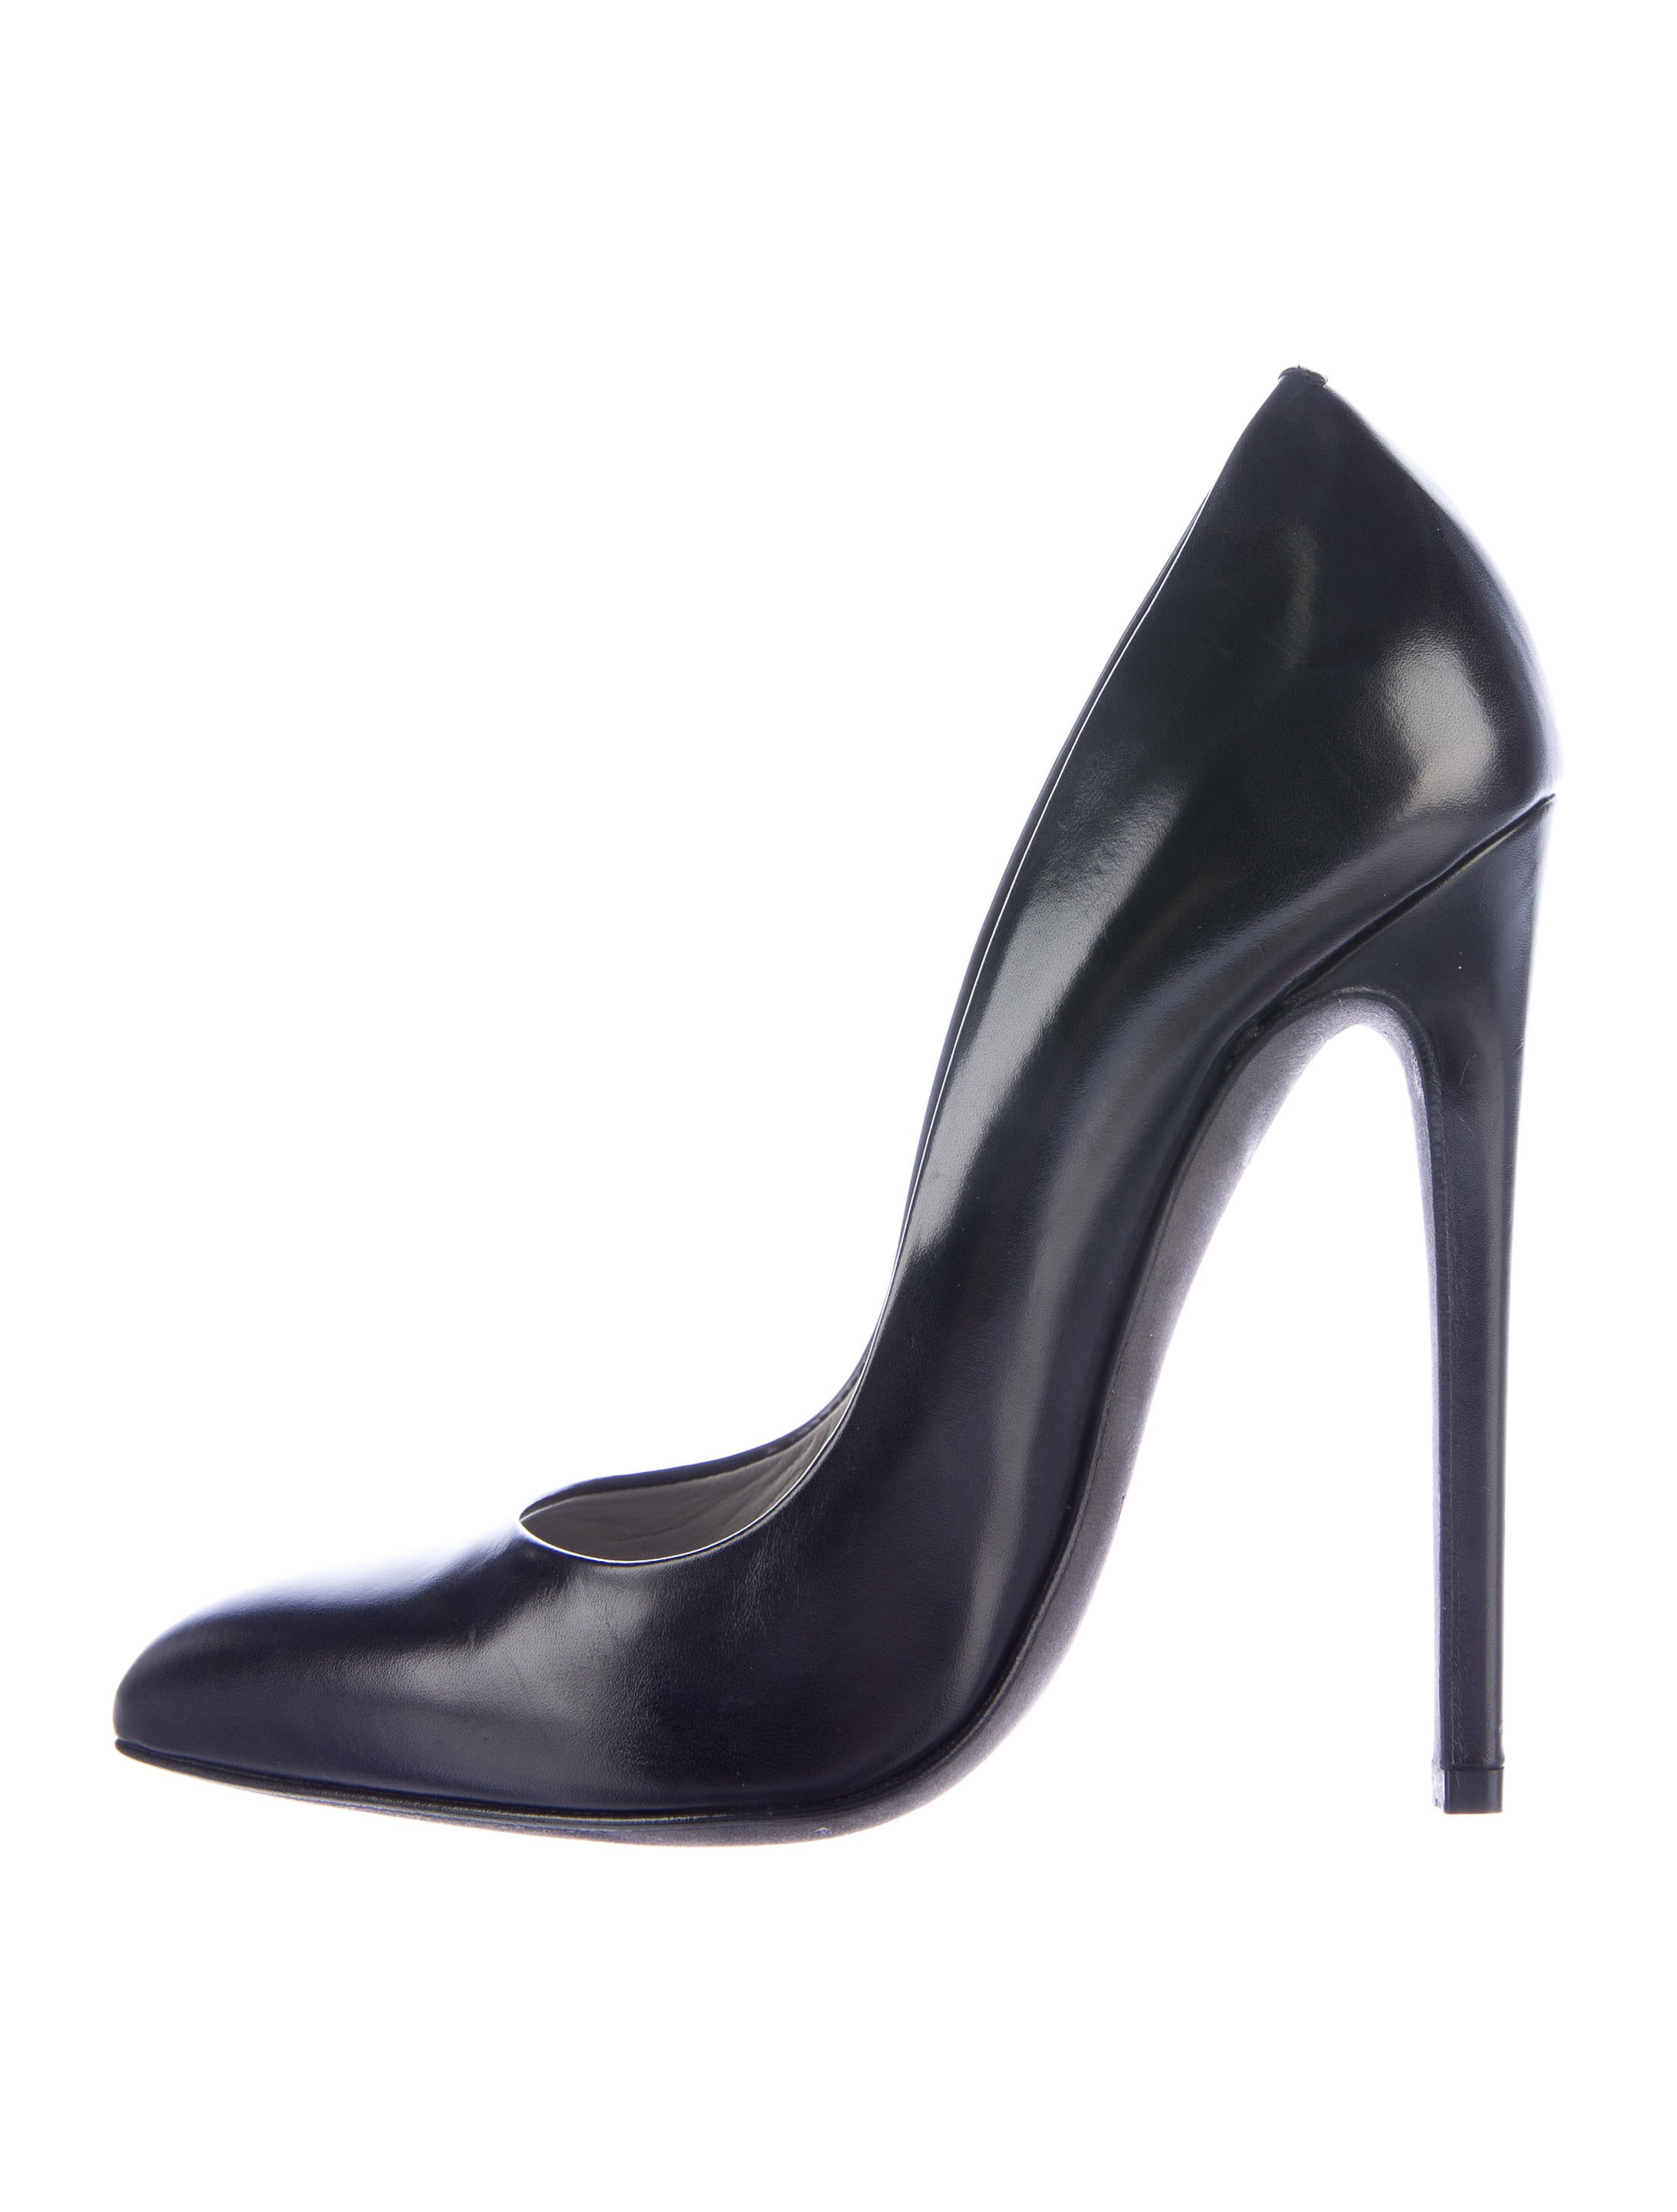 tom ford leather pointed toe pumps shoes tom32997